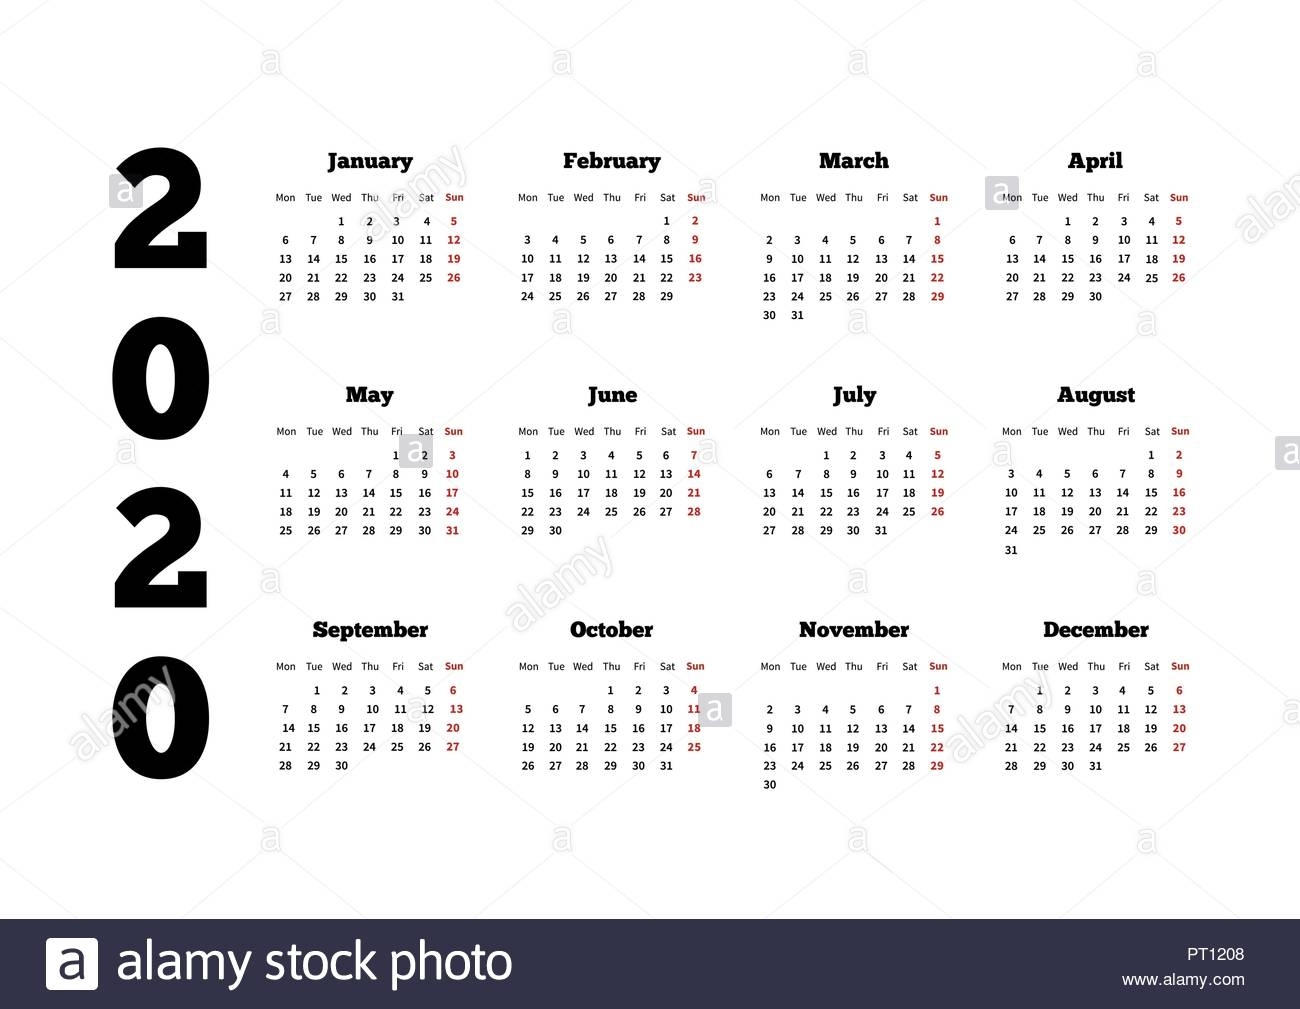 Monday Start Calendar 2020 - Colona.rsd7 for 2020 Calendars With Week Starting Mondays